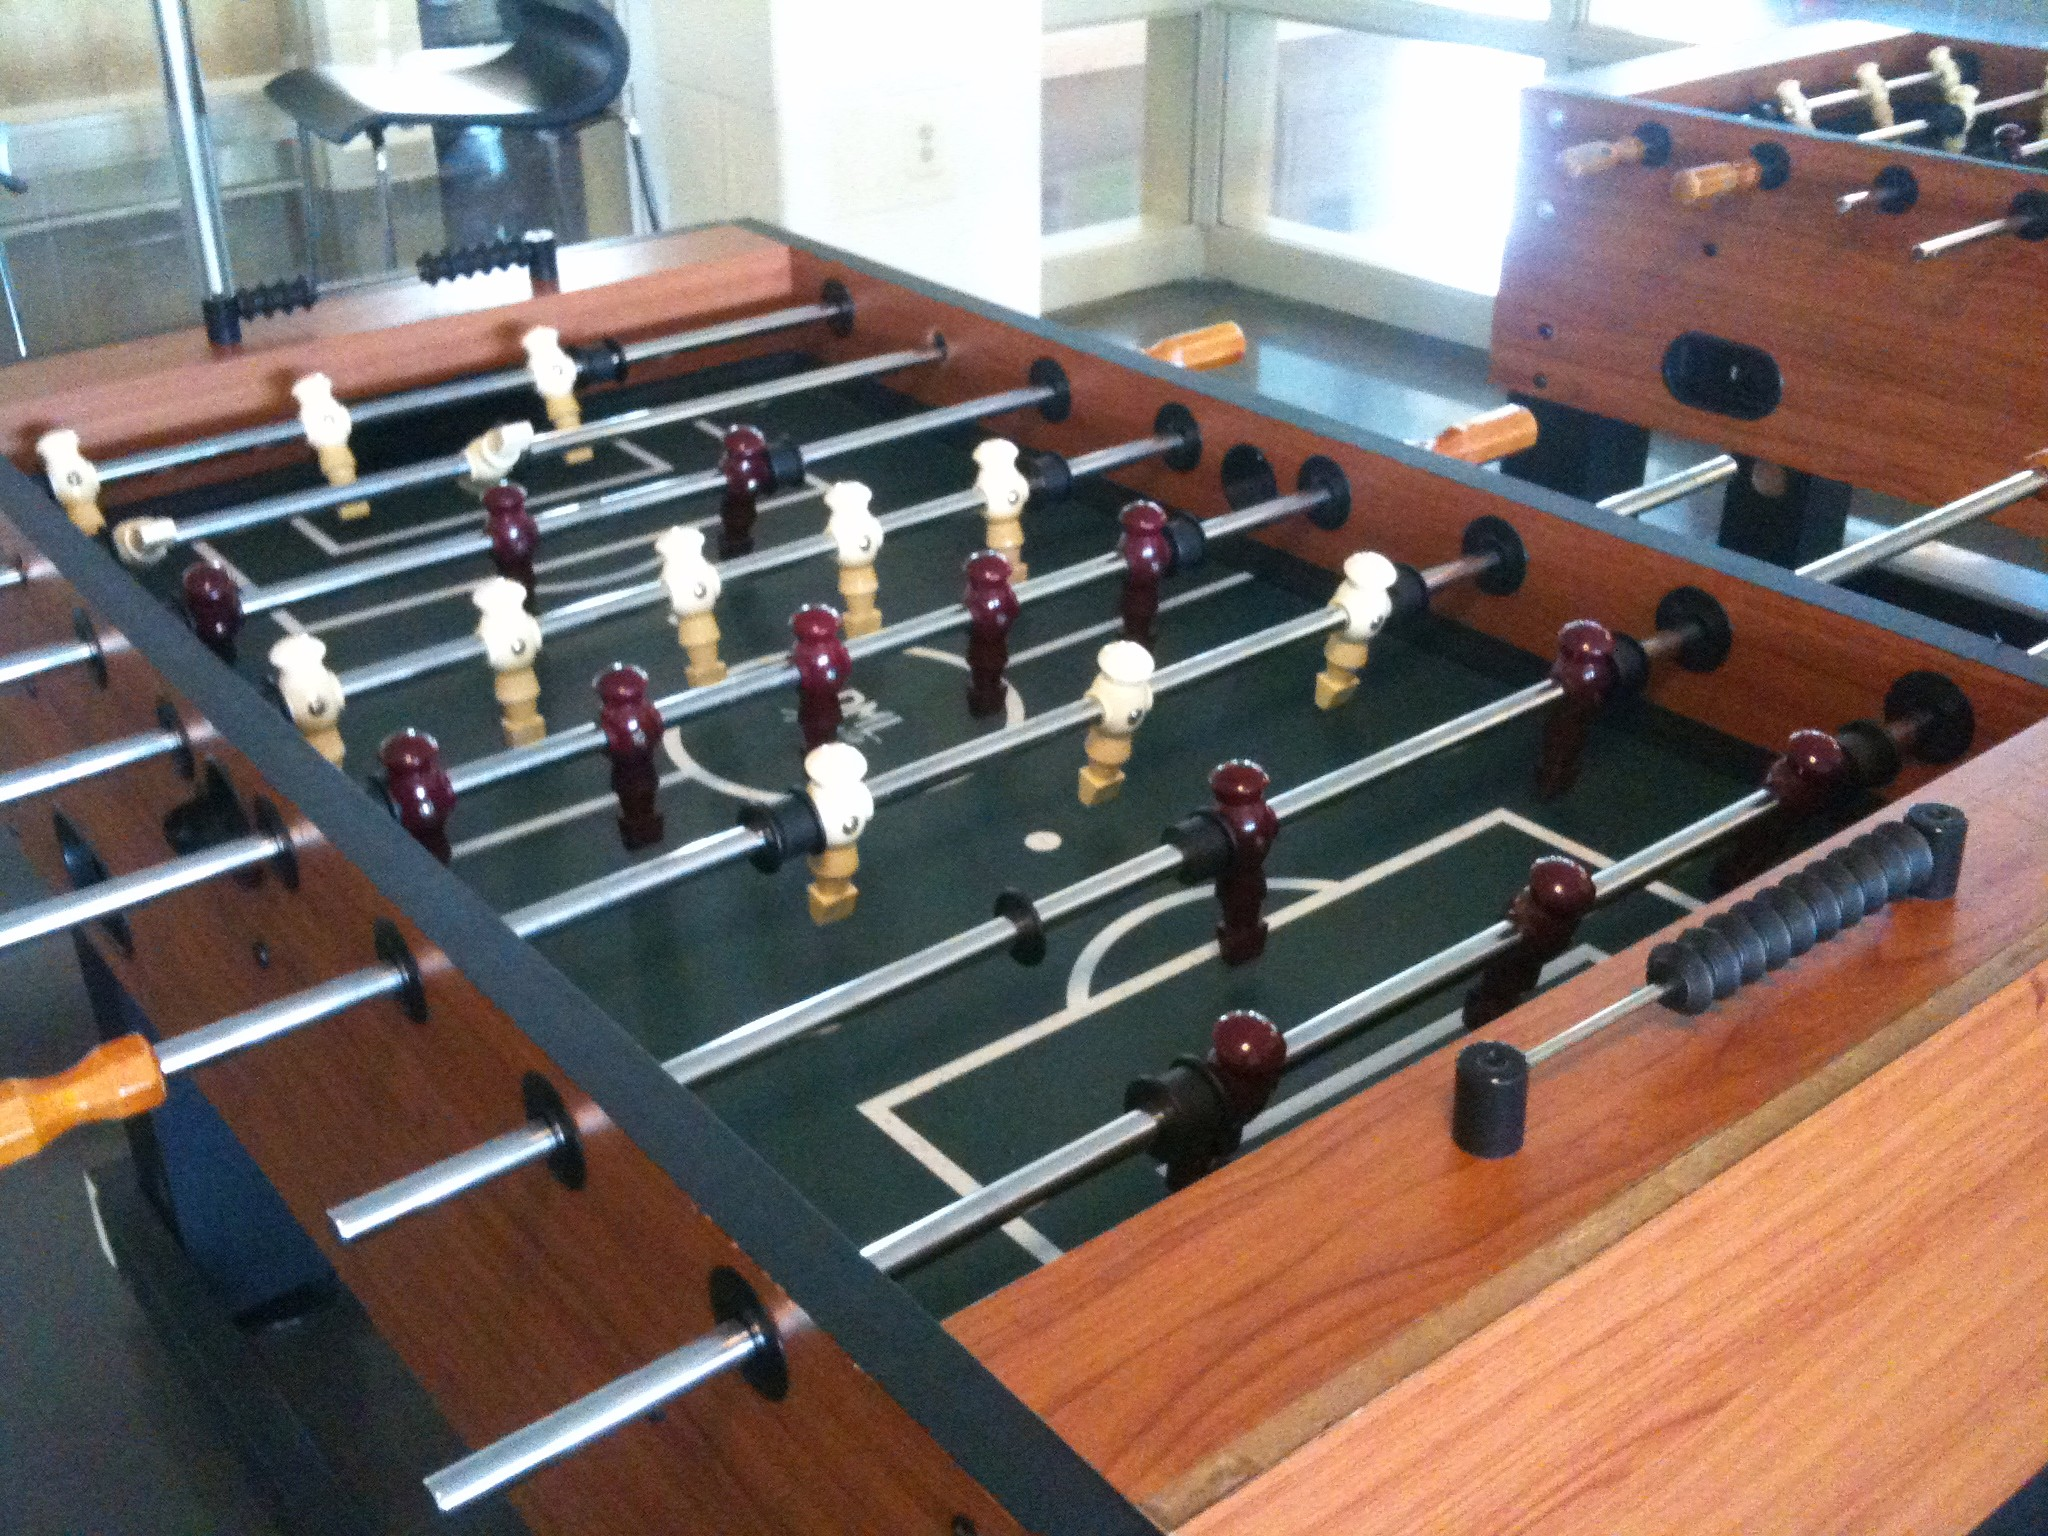 The Game Room Facility Offers A Pool Table, Ping Pong Table, Foosball ...